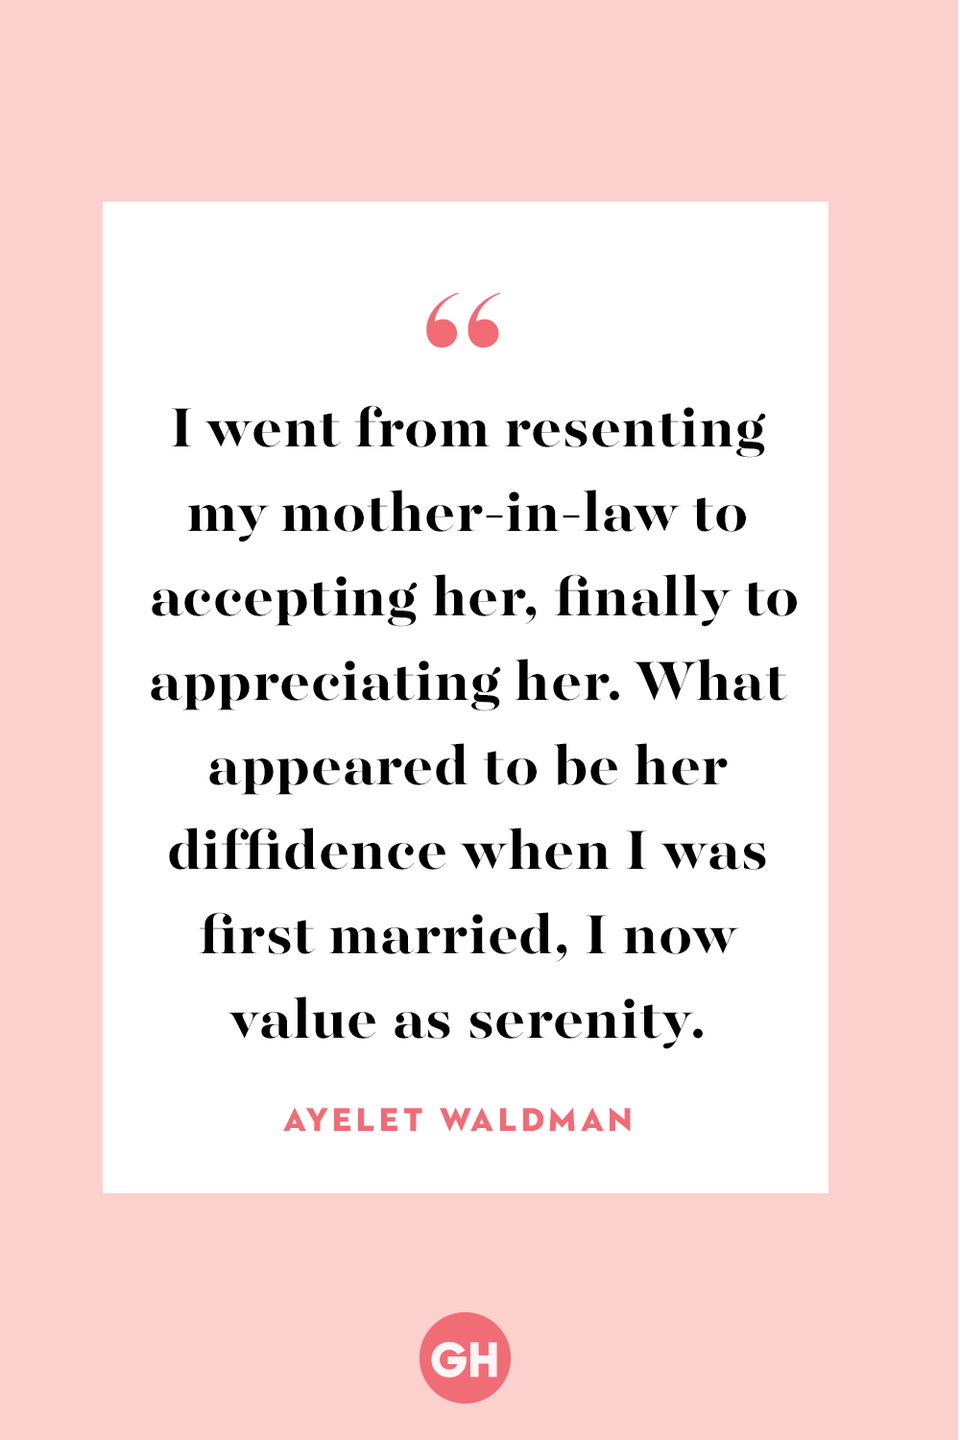 <p>I went from resenting my mother-in-law to accepting her, finally to appreciating her. What appeared to be her diffidence when I was first married, I now value as serenity.</p>